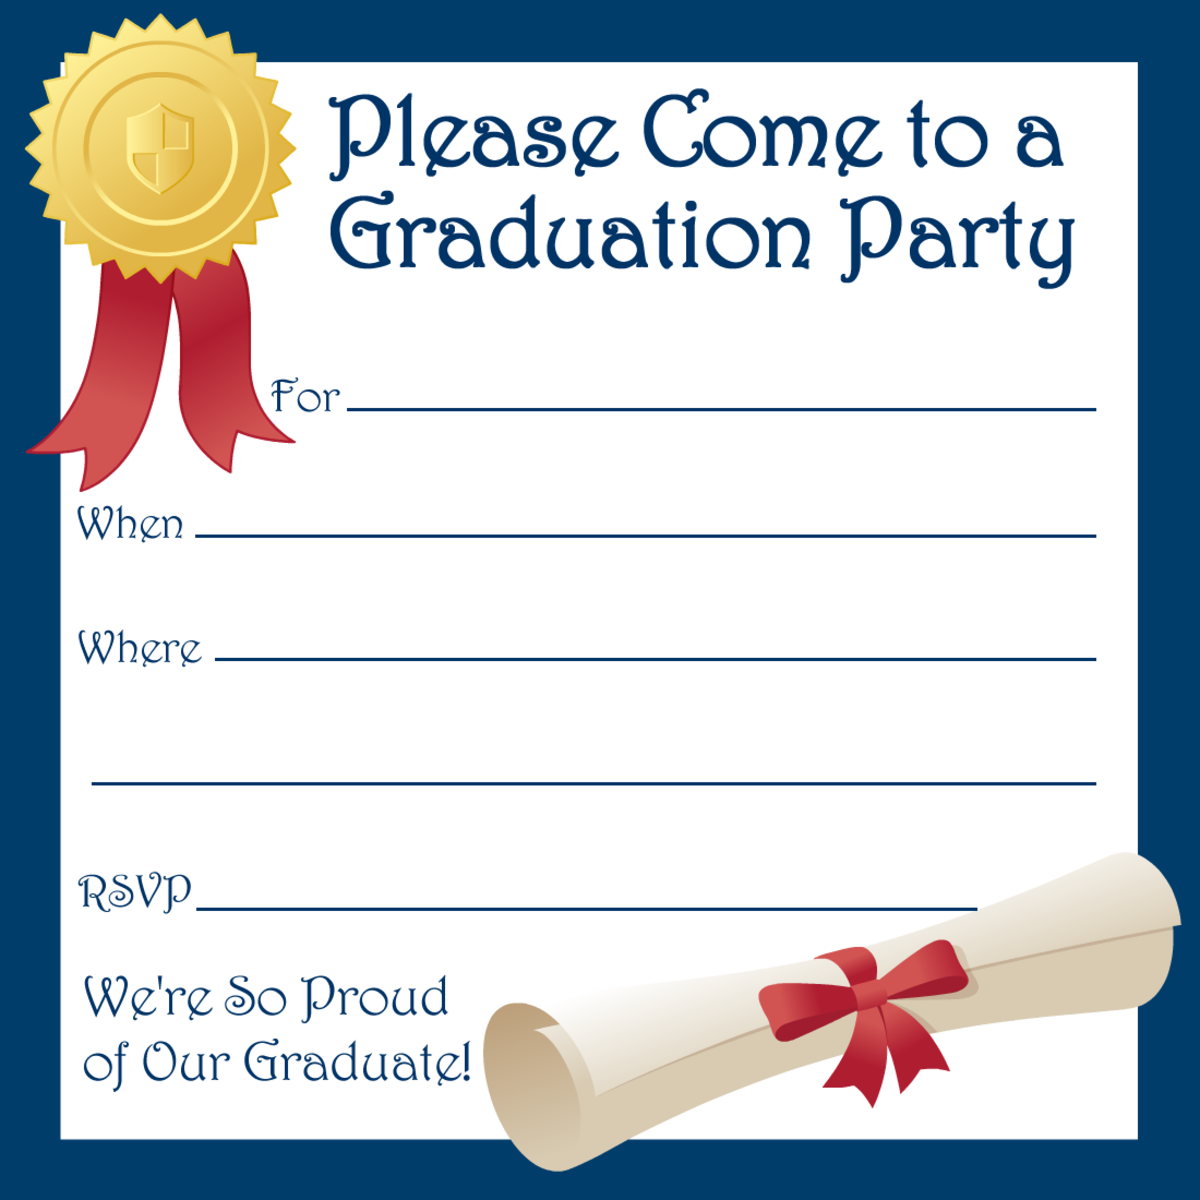 Printable graduation party invite with blue border, seal, red ribbon and diploma